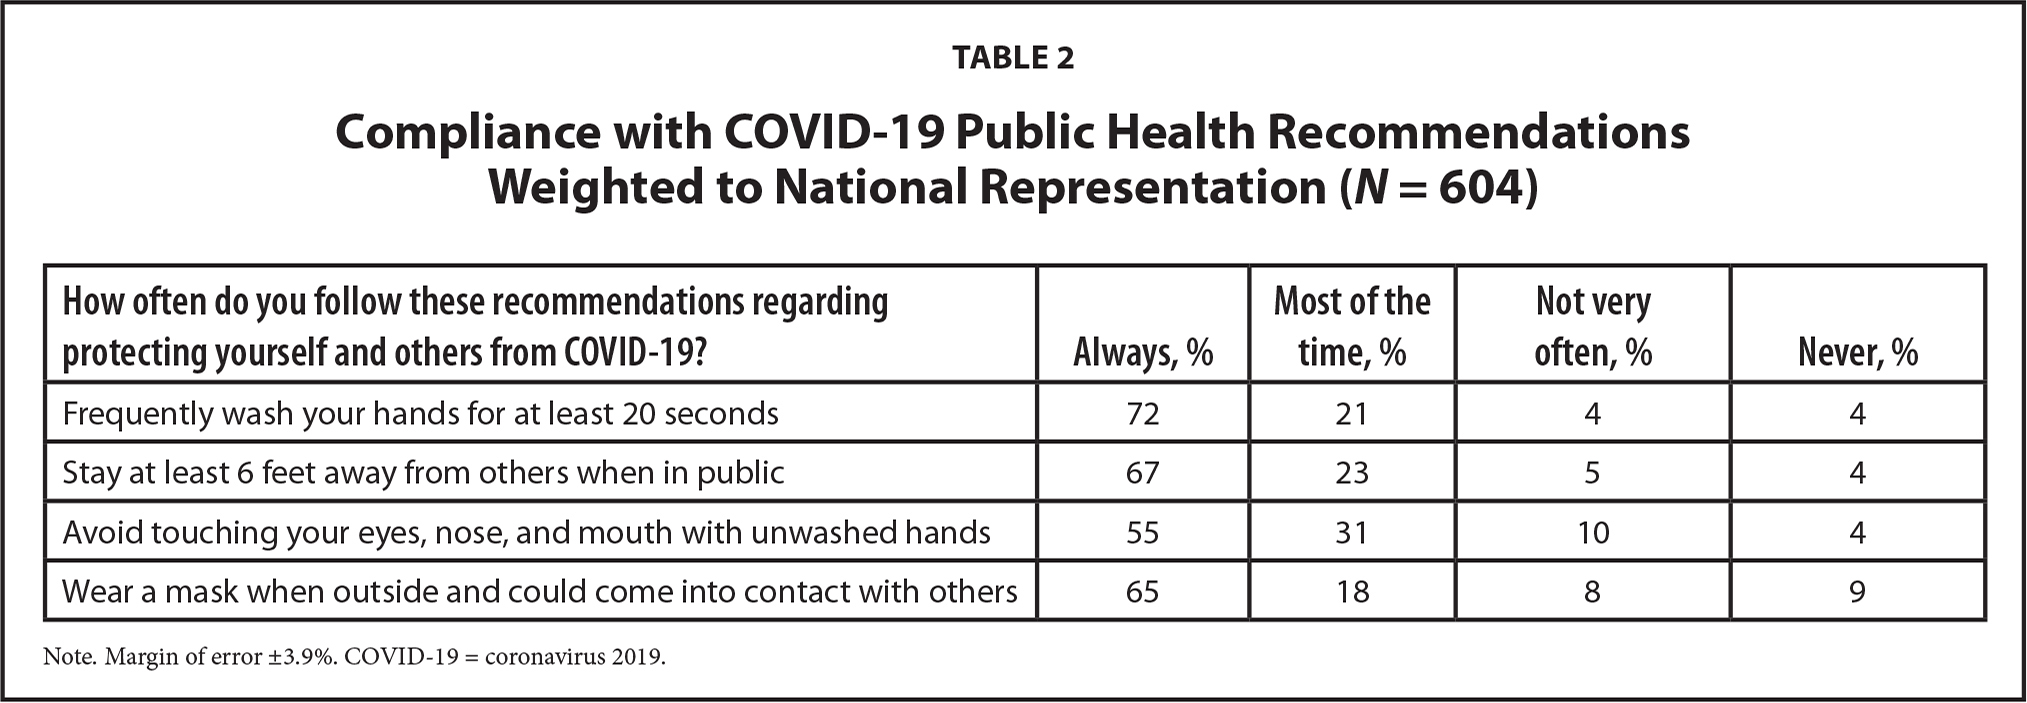 Compliance with COVID-19 Public Health Recommendations Weighted to National Representation (N = 604)